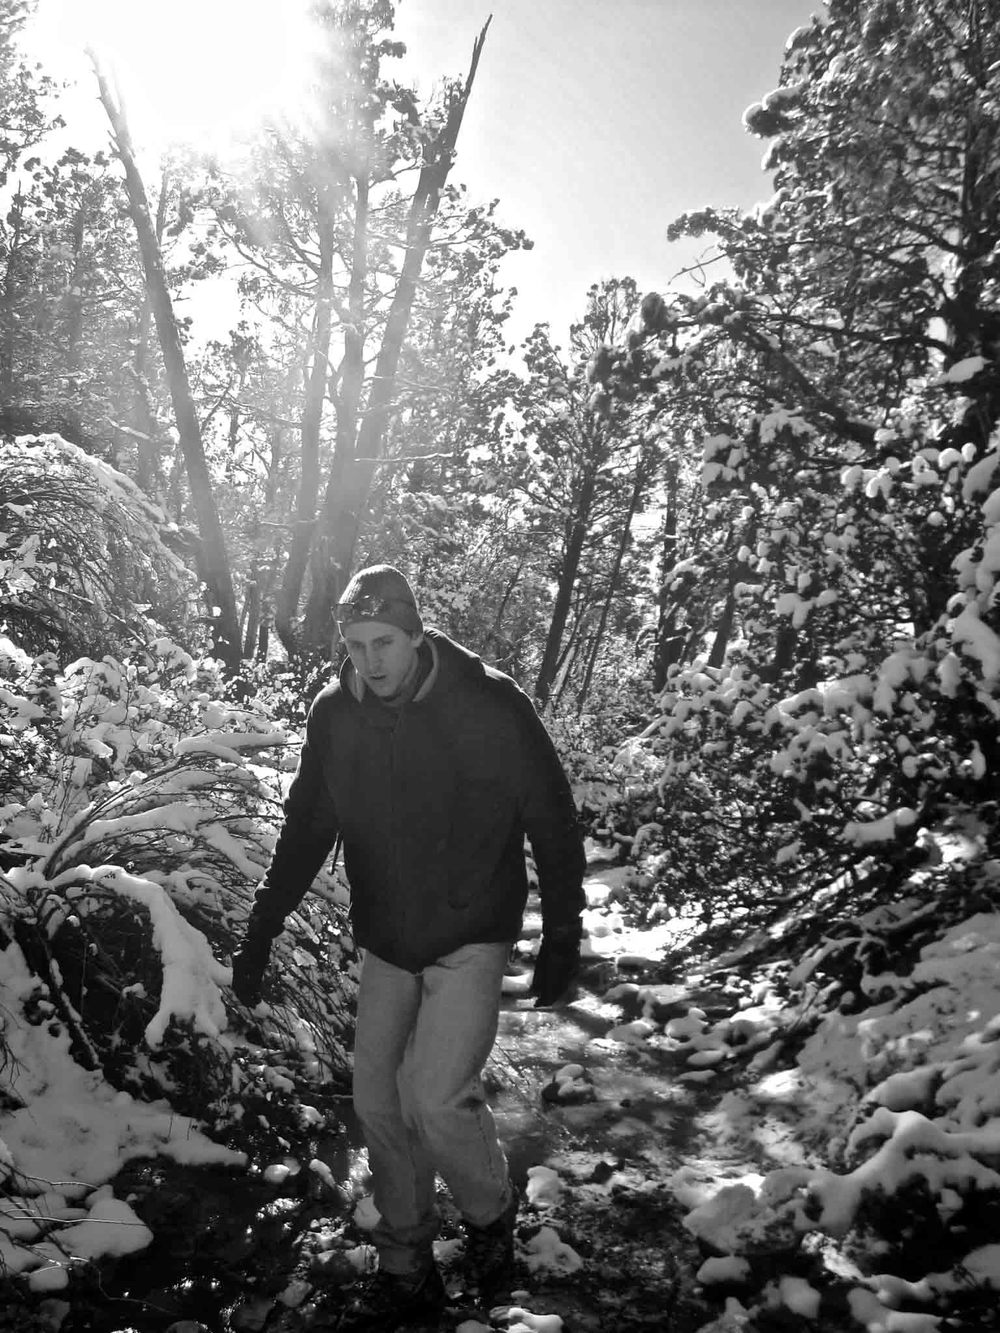 Chuck Demas at Soldiers' Pass, Sedona, Arizona, January 2011